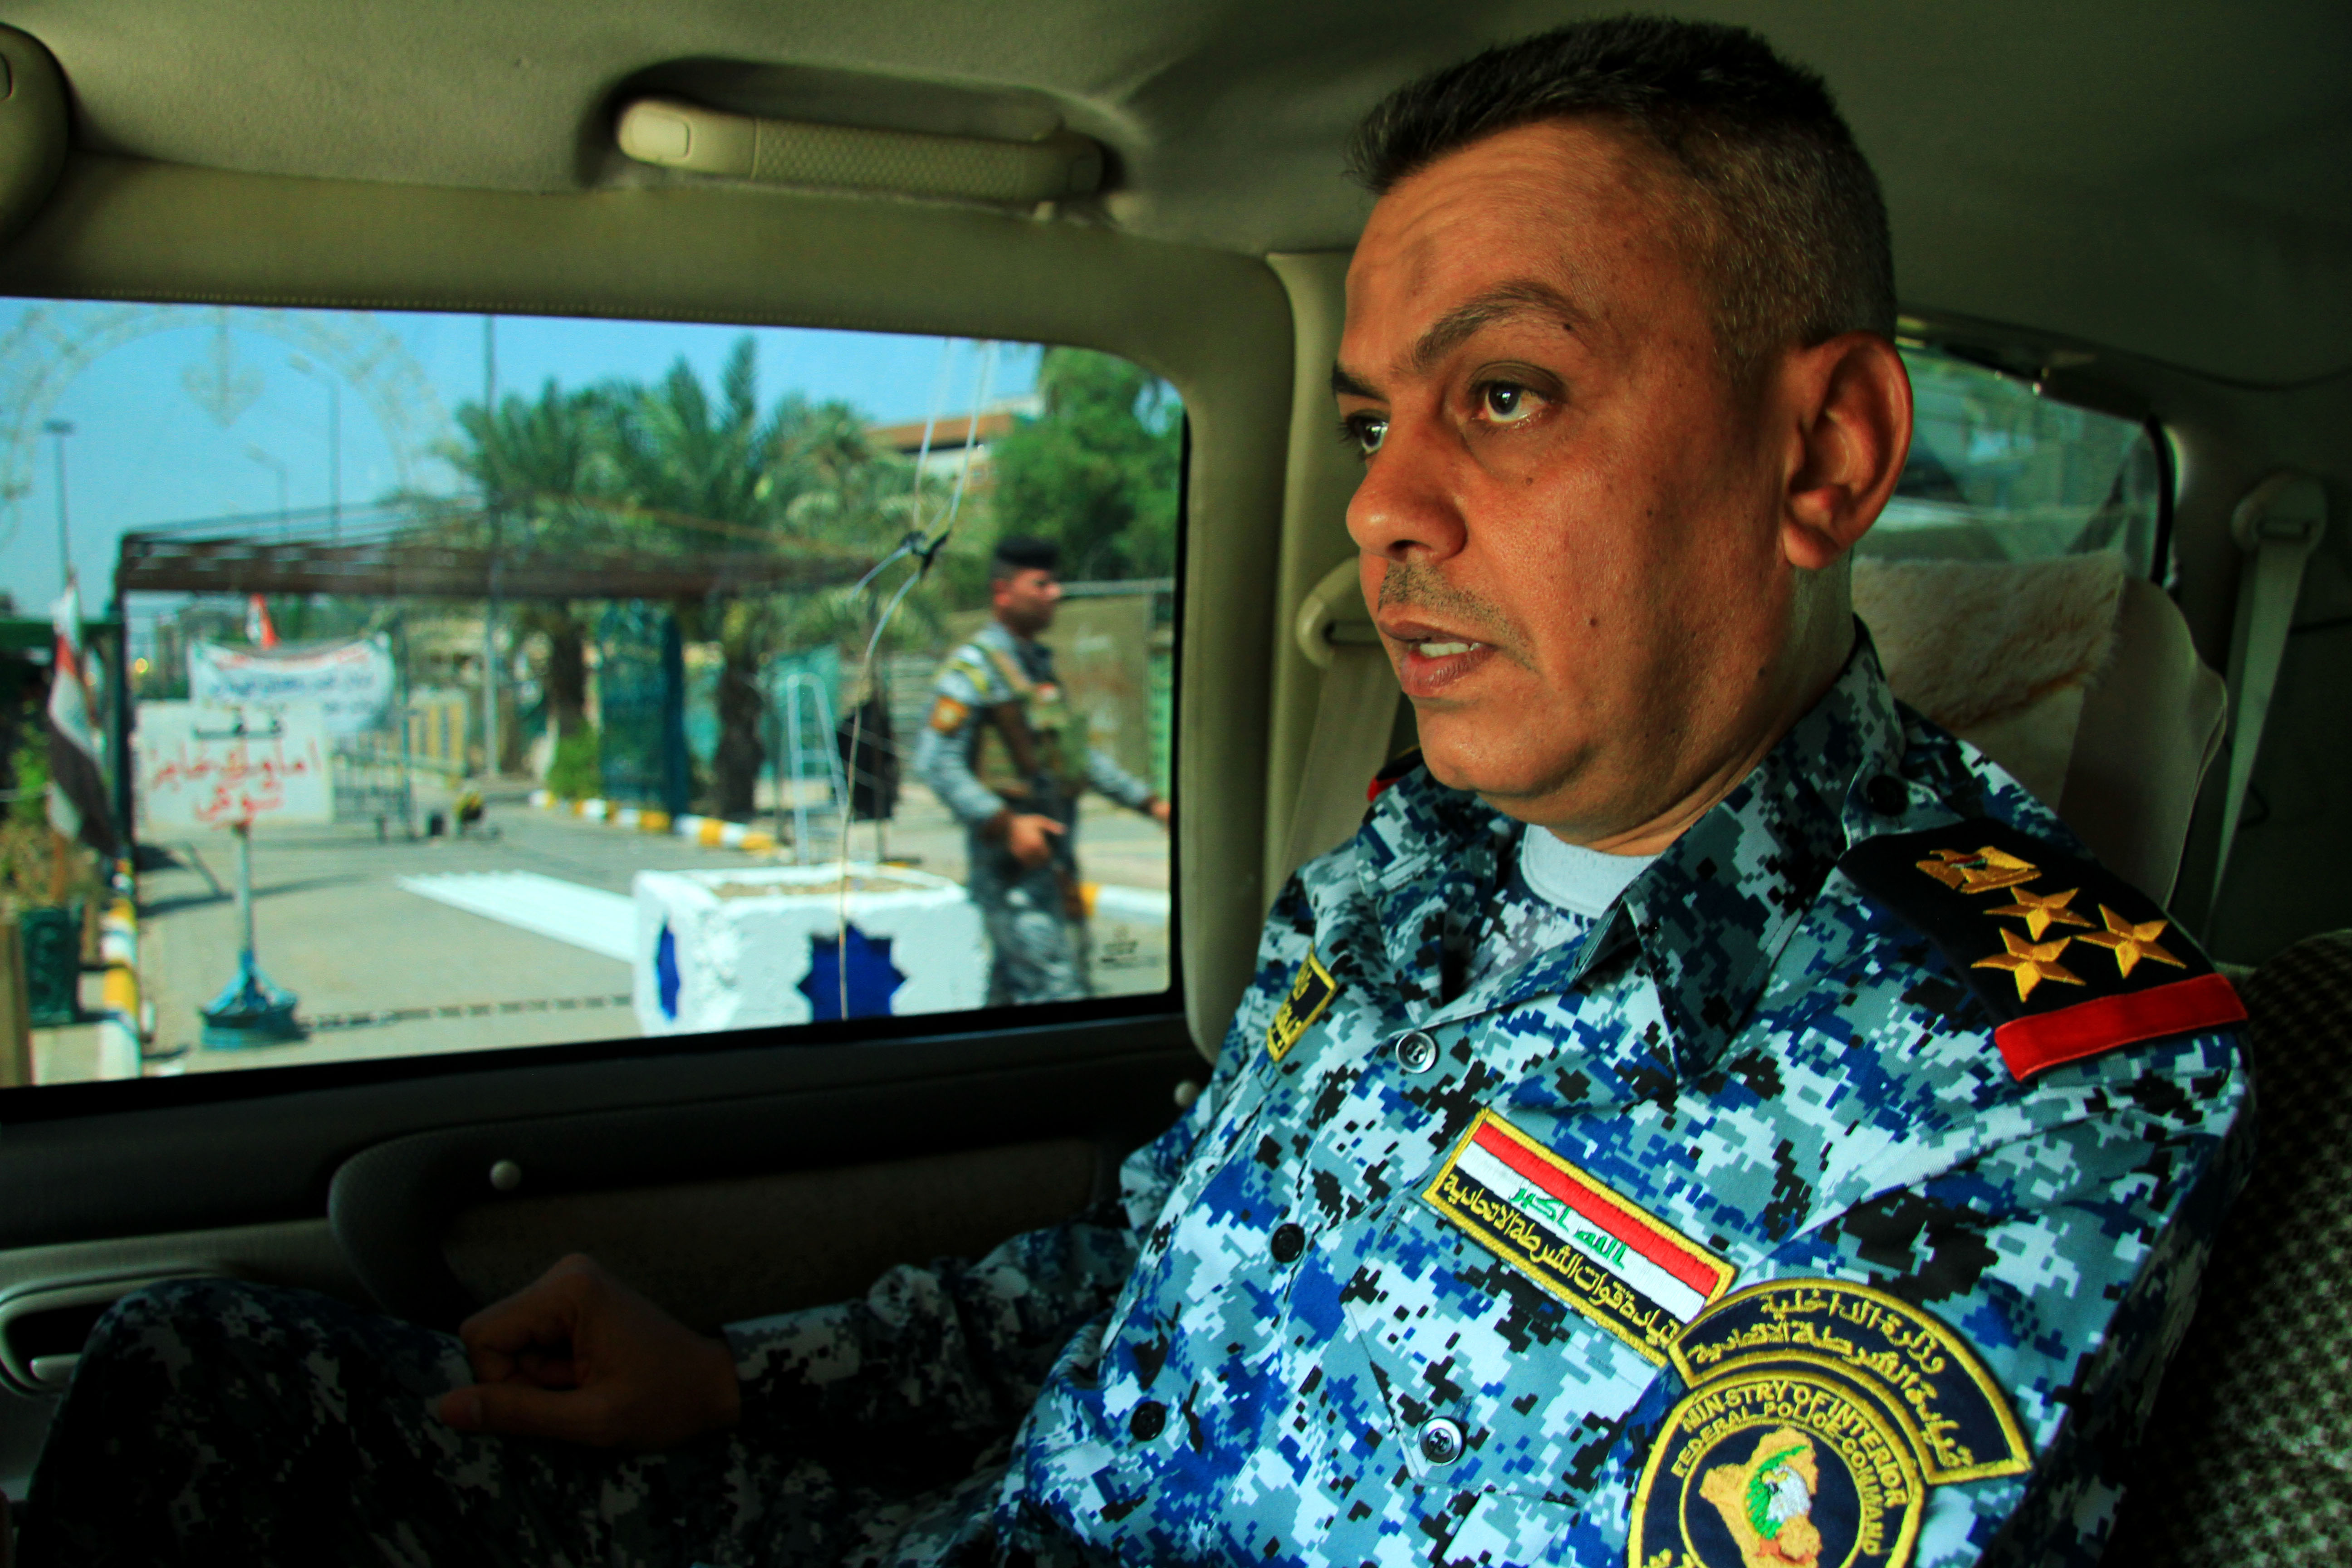 General Malik Maliki of the 8th division of Iraq's Federal Police out on patrol on the outskirts of the mostly Shia neighborhood of Khadamiya in north Baghdad. At a checkpoint not far from here, just hours before his visit, a suicide car bomb attack kille